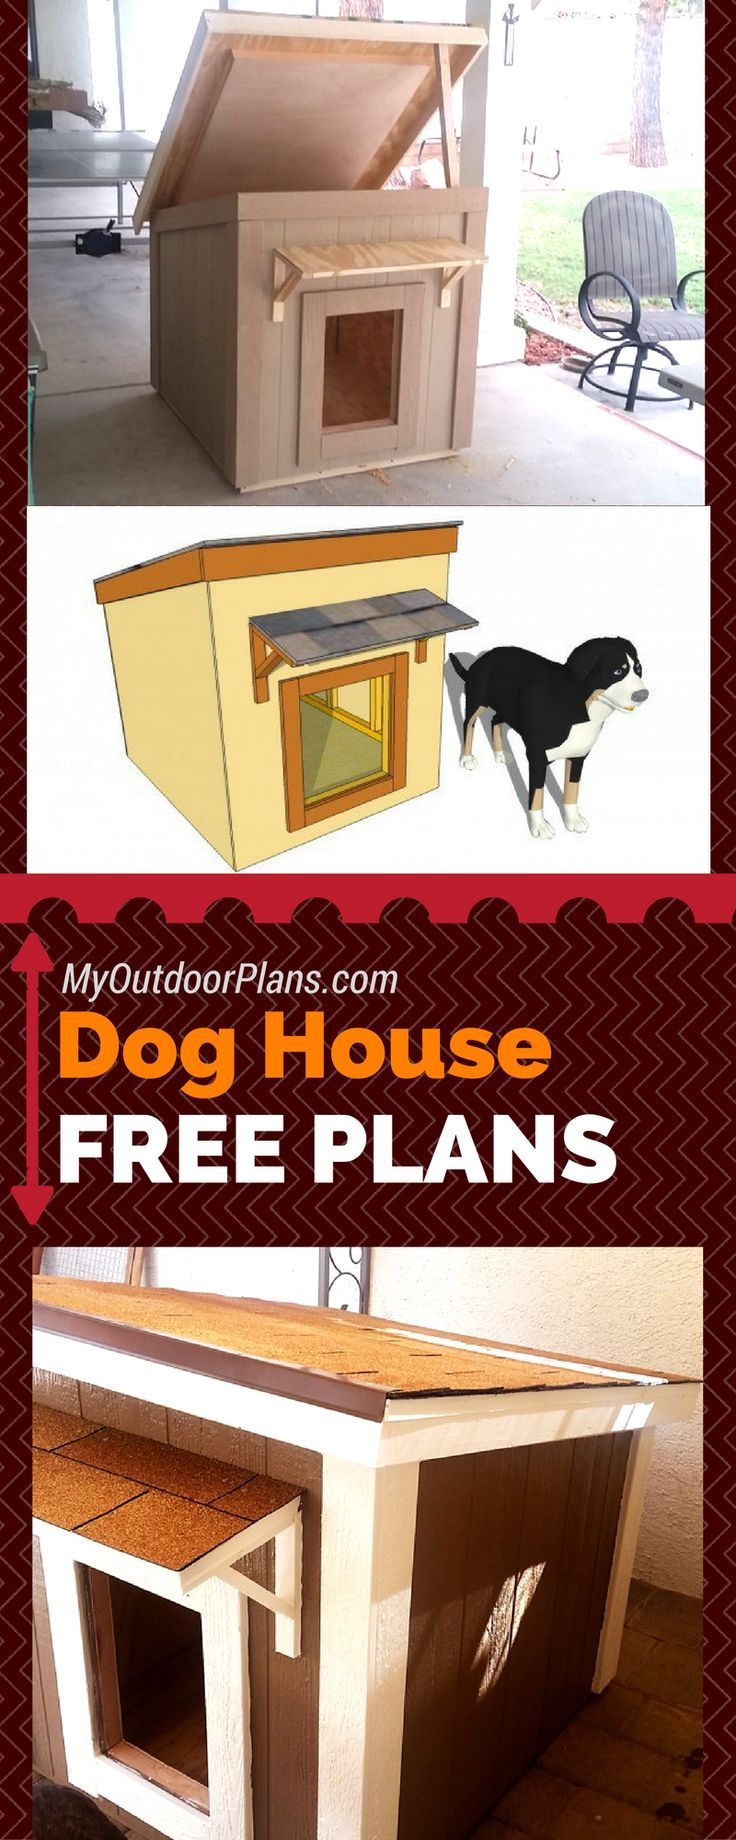 Dog house of green valley - Free Plans For You To Build A Large Dog House Step By Step Instructions And